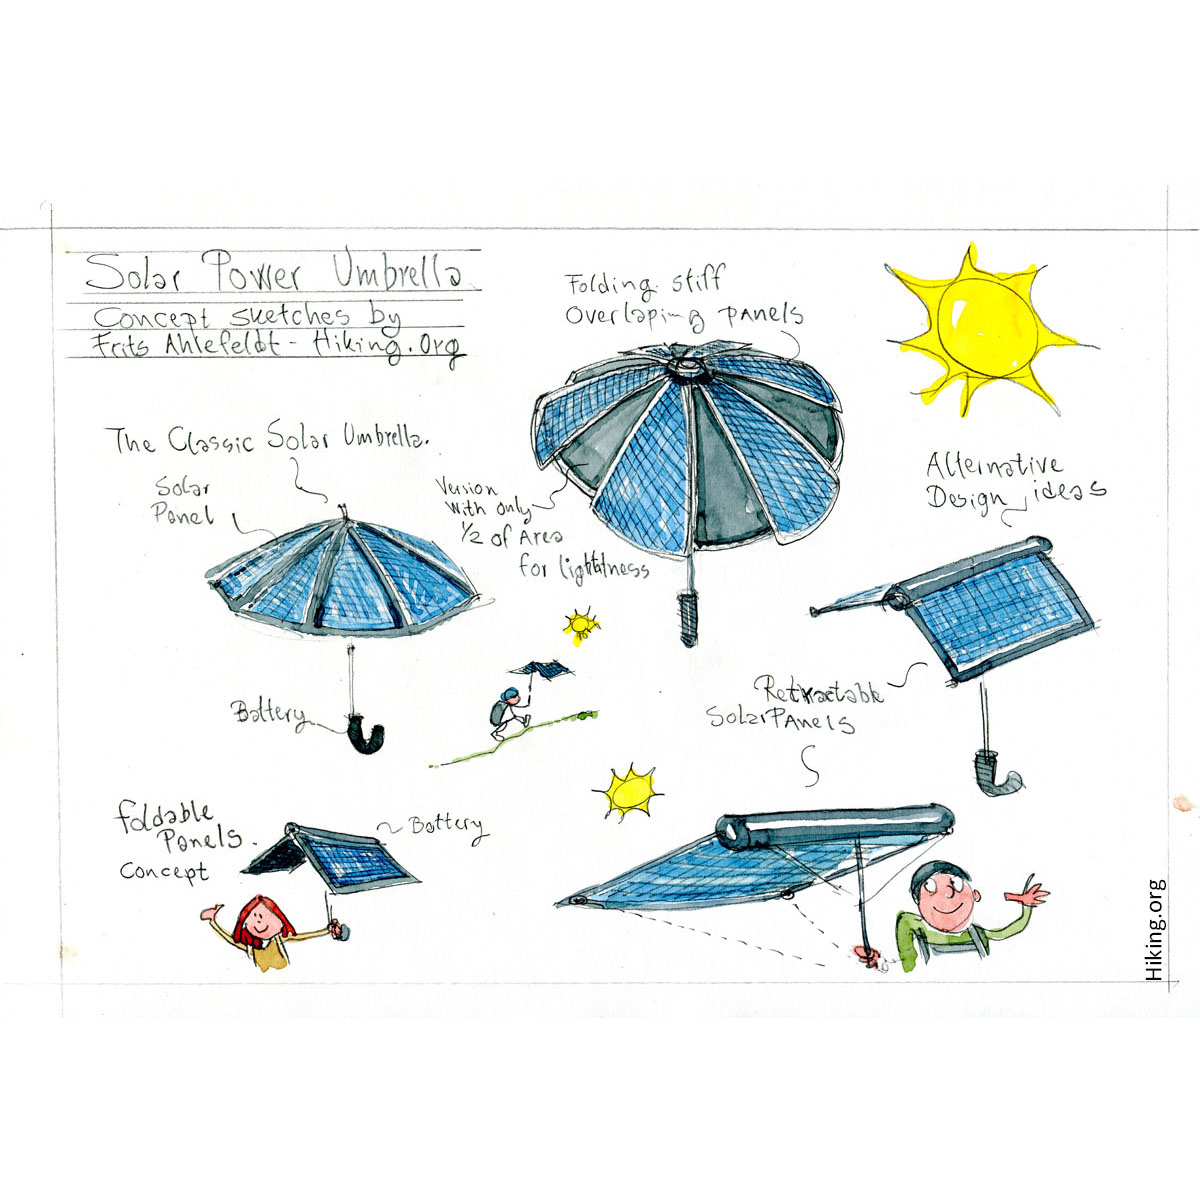 Solar power umbrella types sketches. concept sketch Drawing by Frits Ahlefeldt